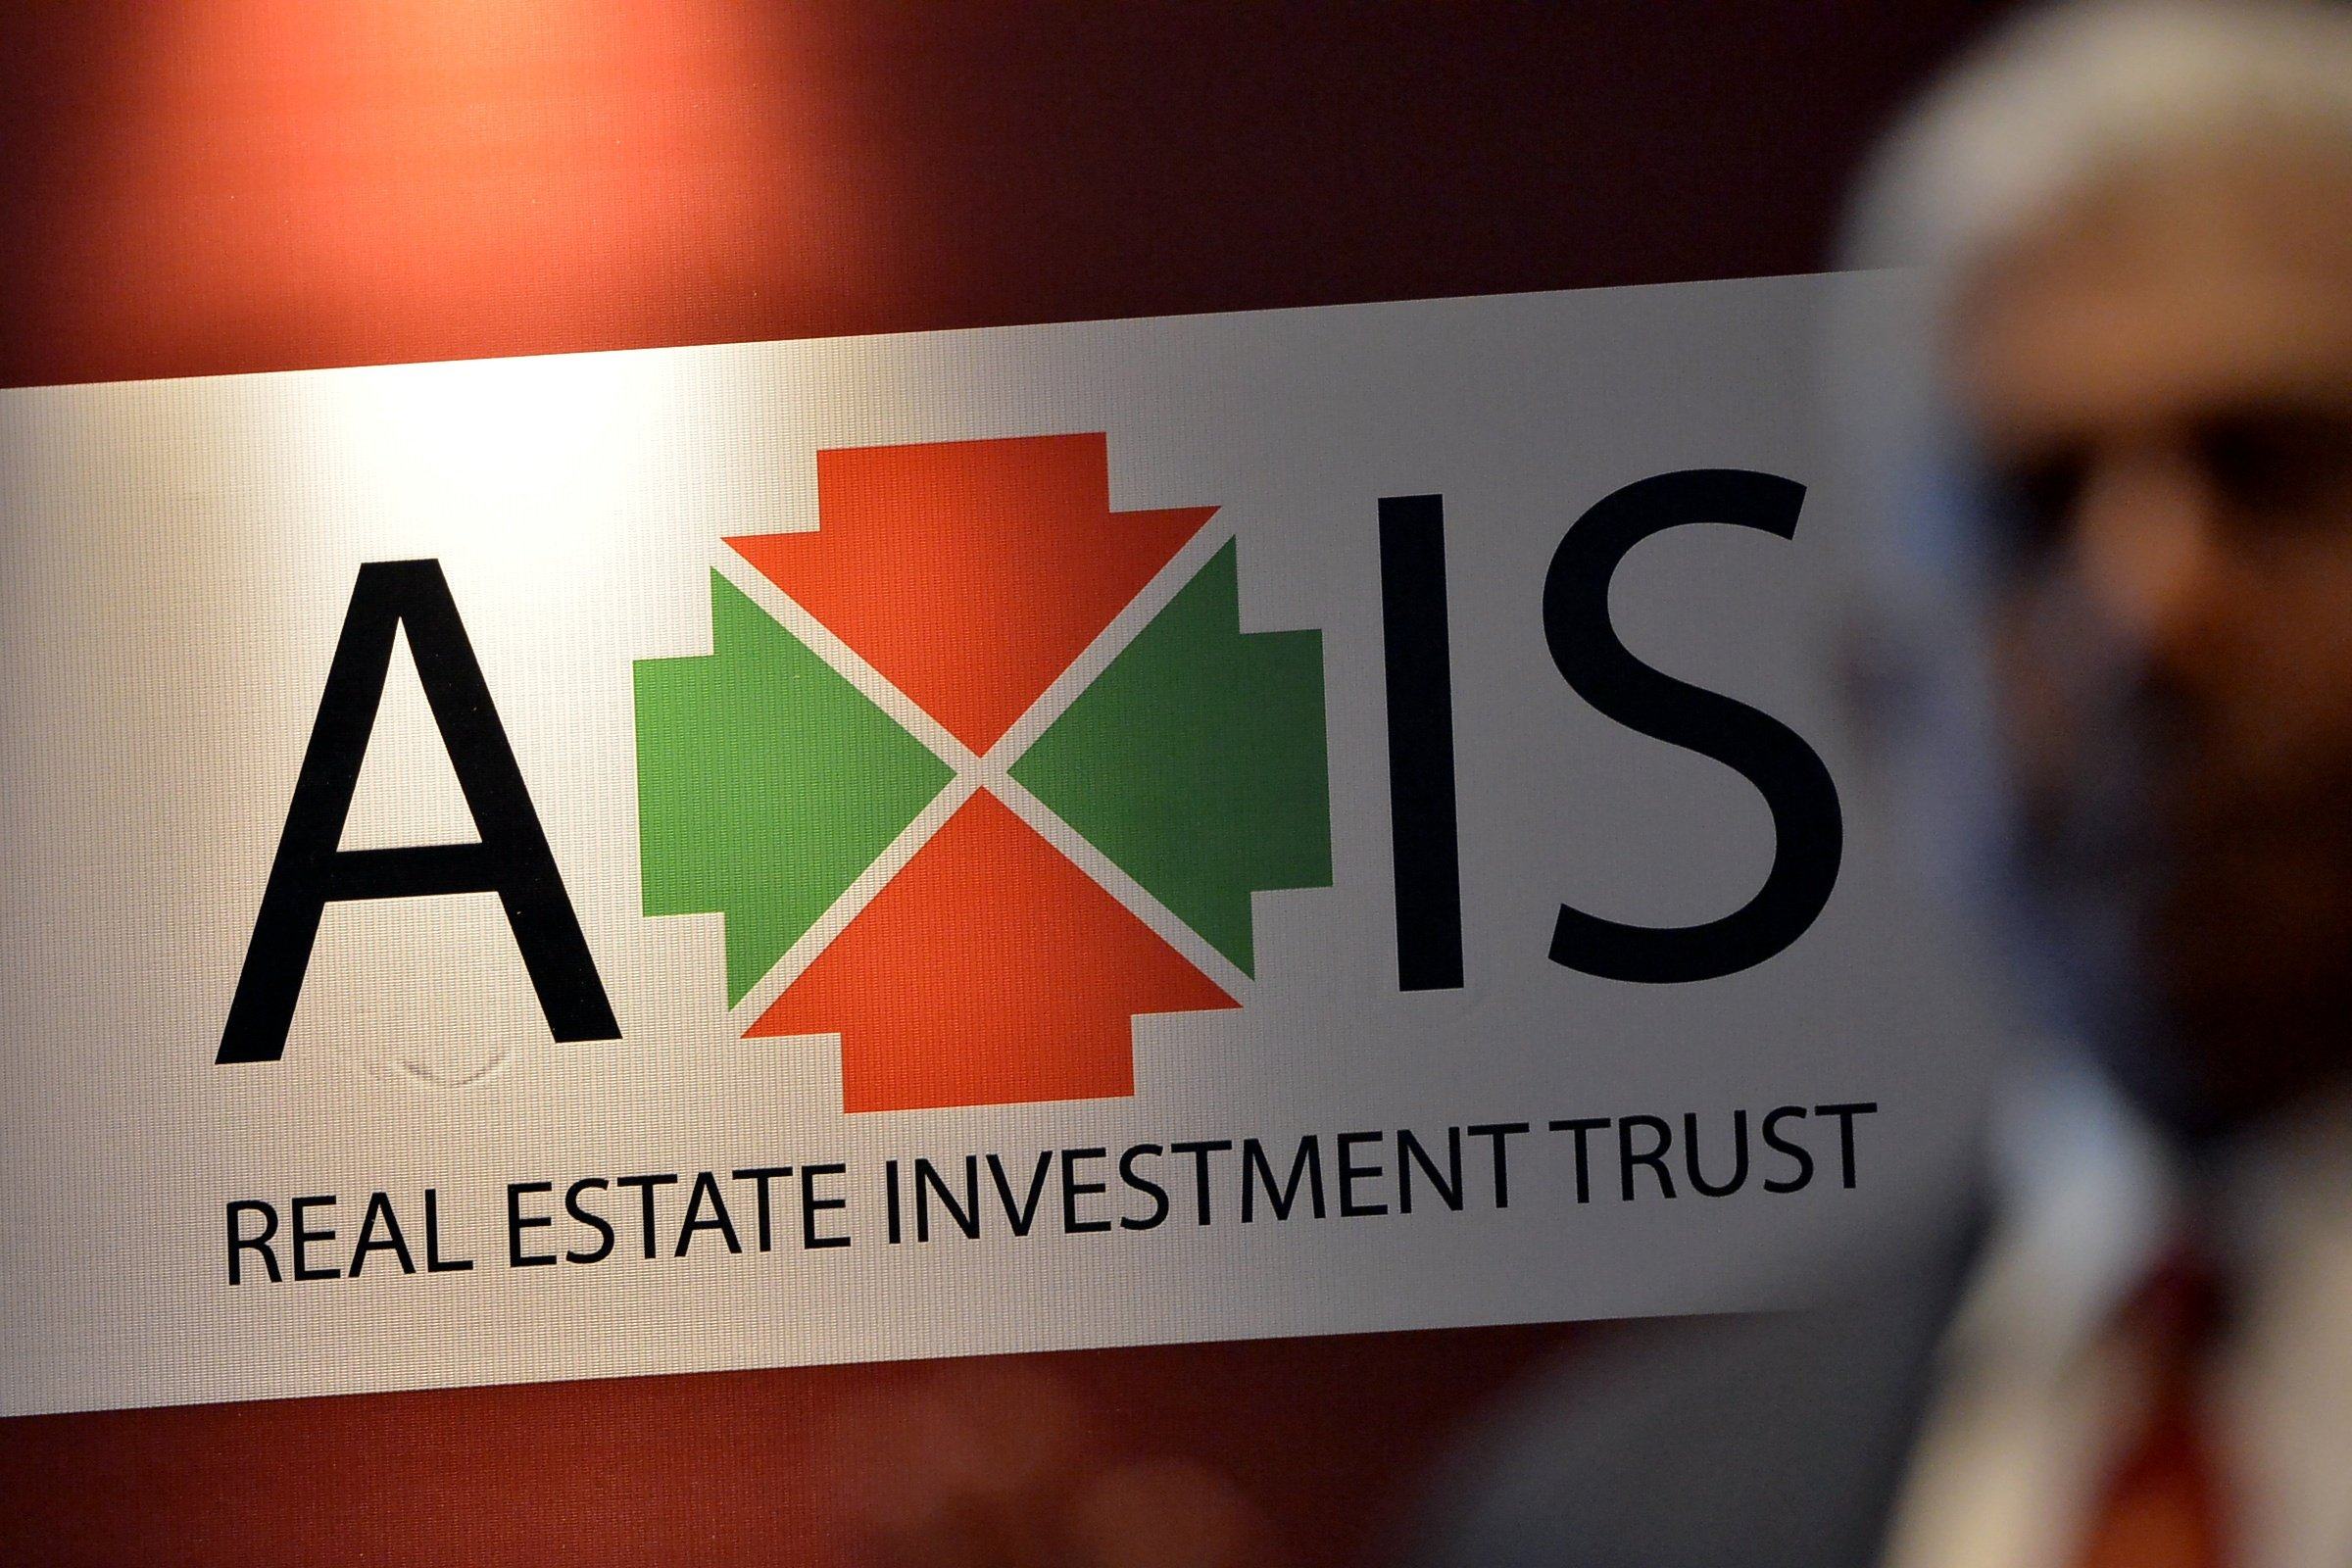 Axis REIT's RM50m industrial land acquisition in Nilai deemed positive by HLIB